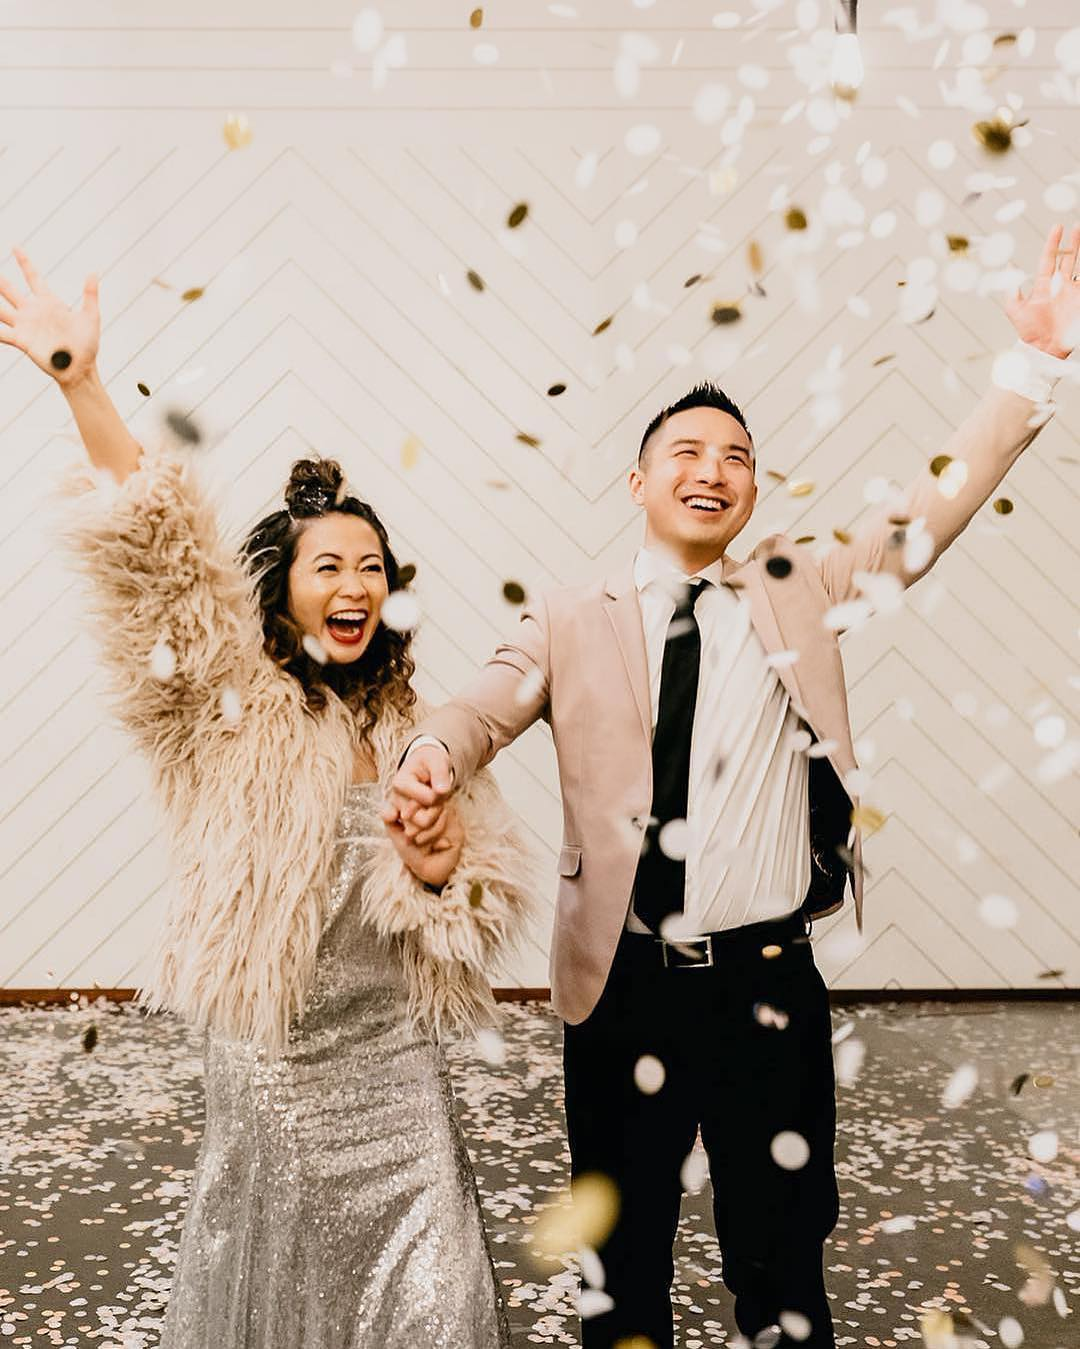 How-to-Manage-First-Dance-Wedding-Jitters-Bridal-Musings-DJ-Malike-2 How To Manage Wedding First Dance Jitters